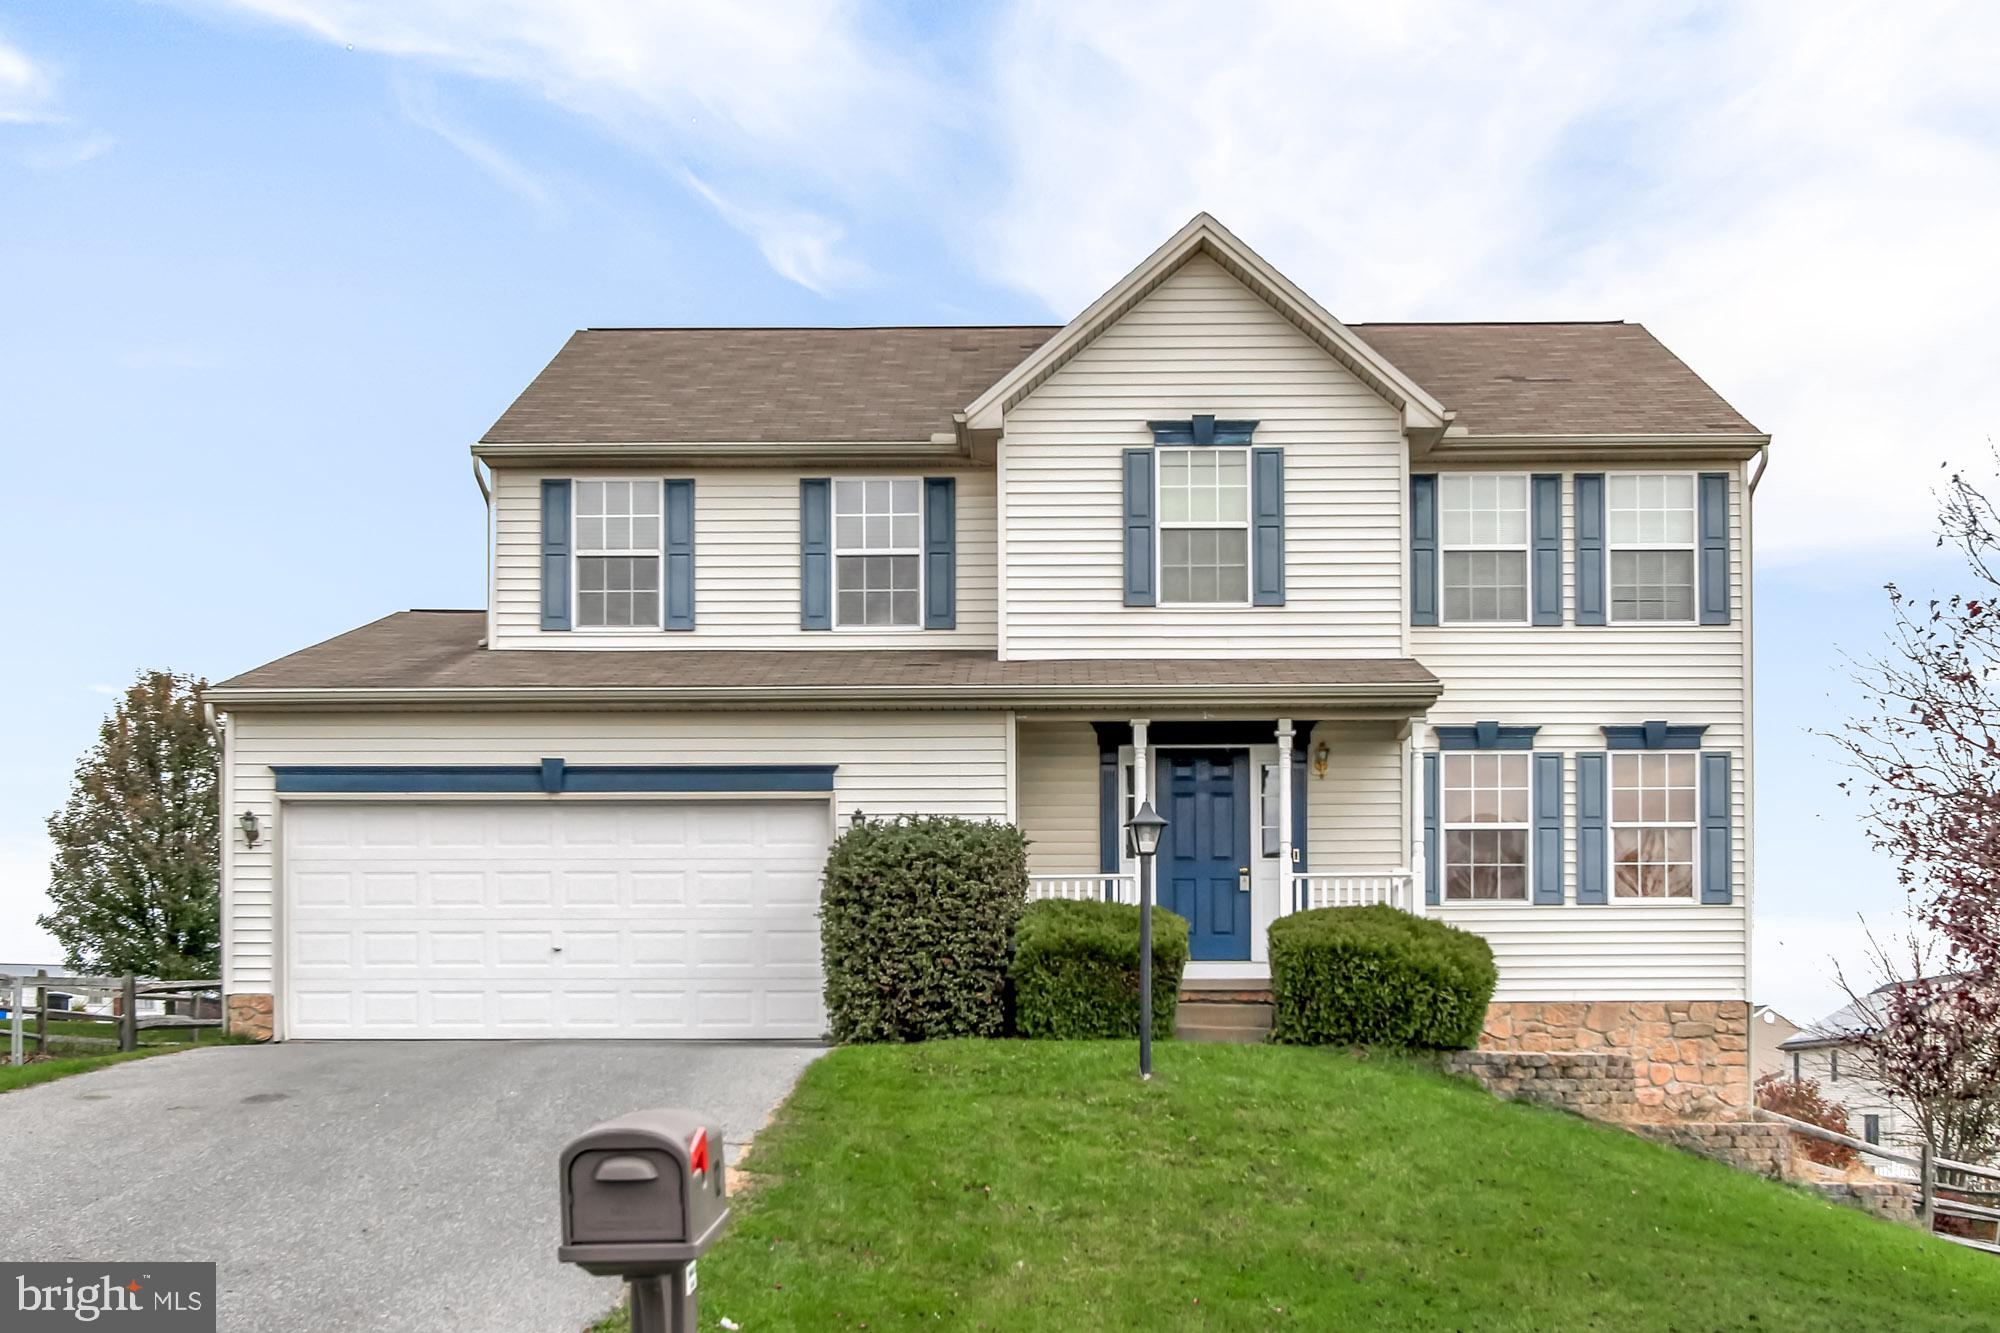 12 SADDLEBROOK DRIVE, FELTON, PA 17322